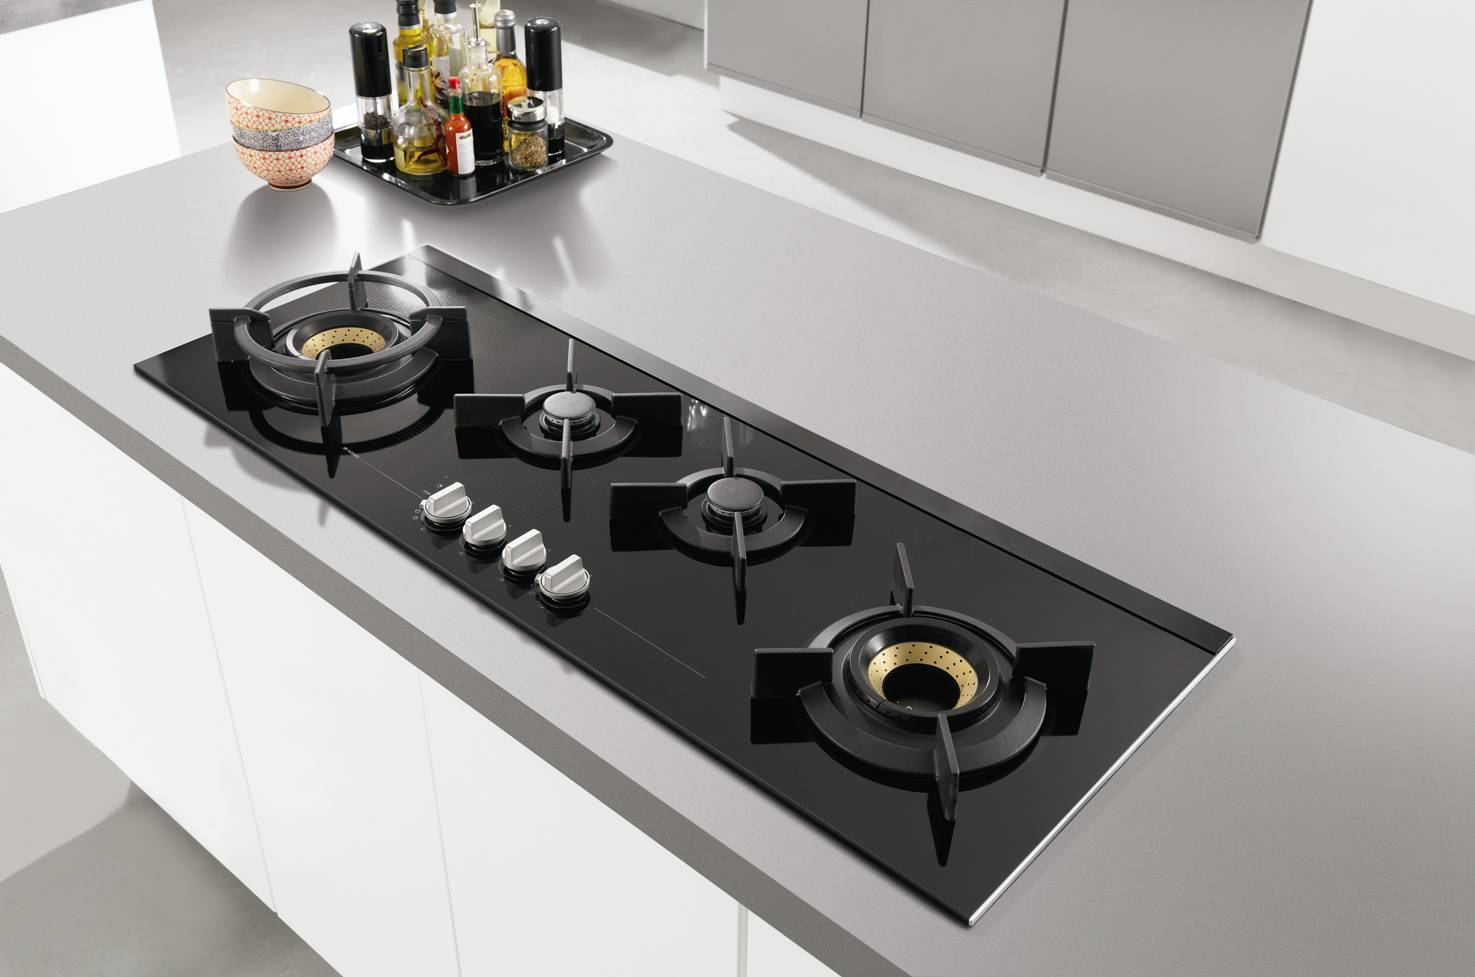 HG1145AD Pro Series Gas Cooktop Asko Appliances